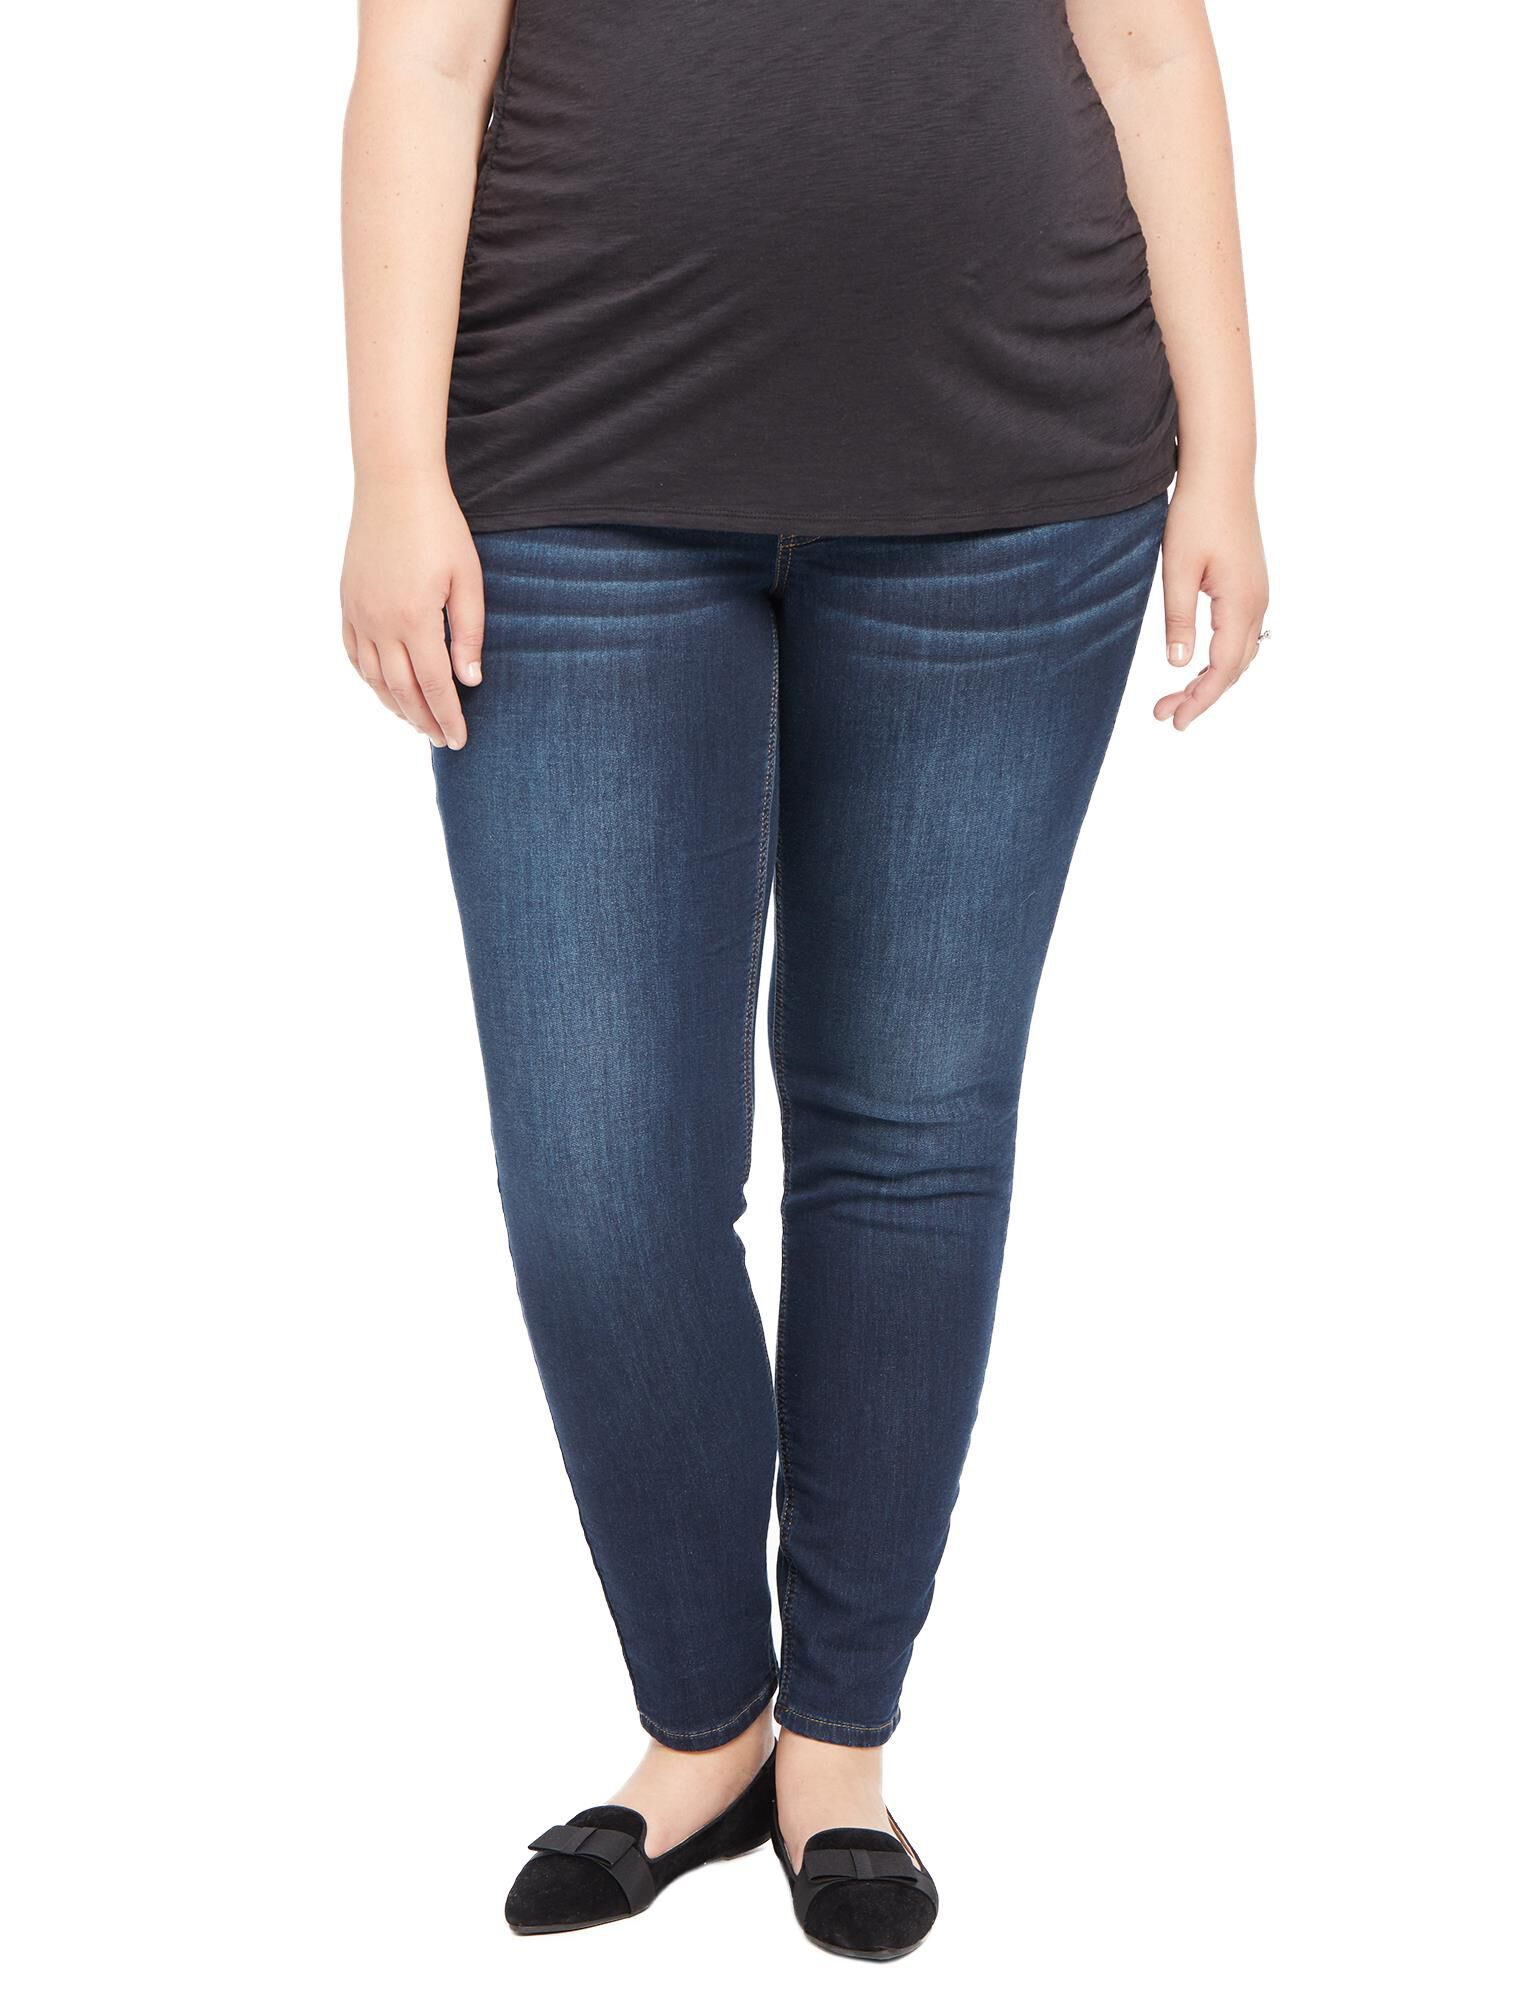 Plus Size Secret Fit Belly Jegging Maternity Jeans